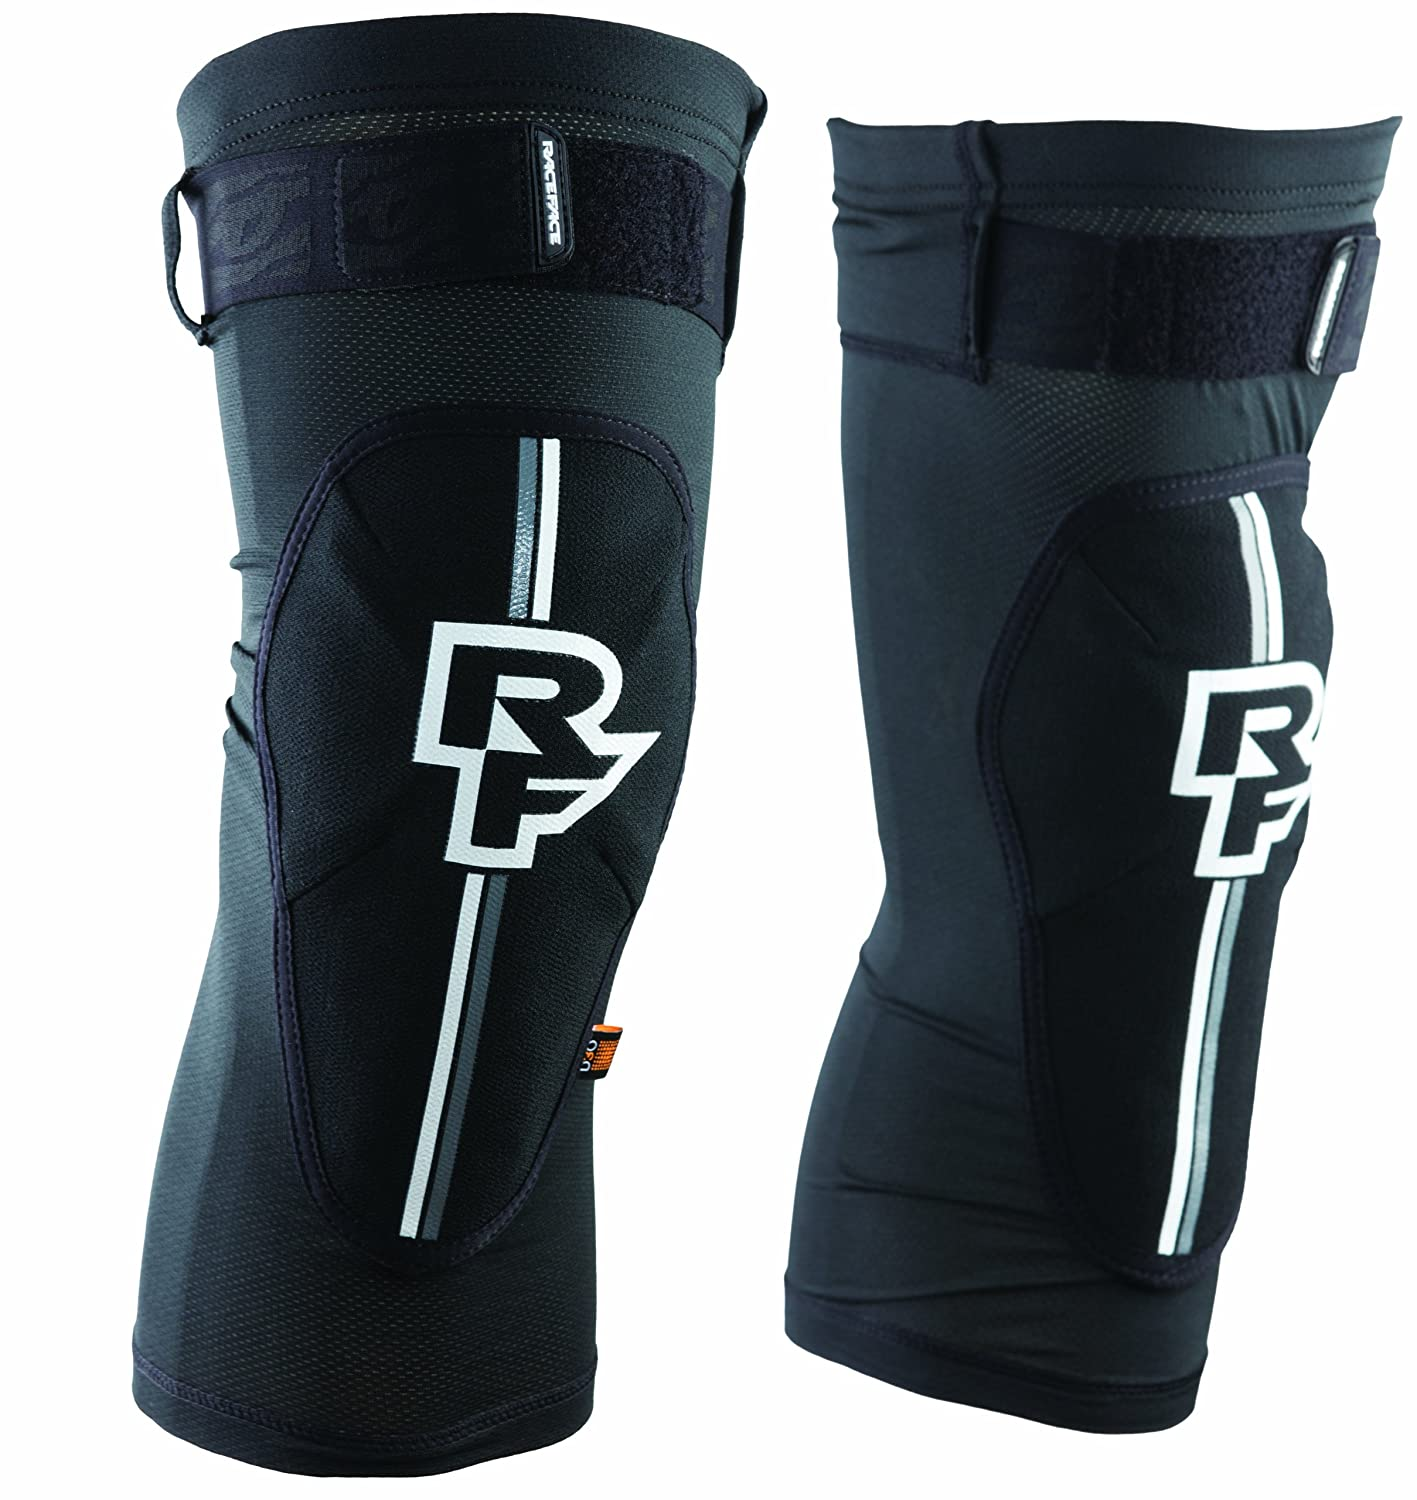 RaceFace Indy Knee Guard